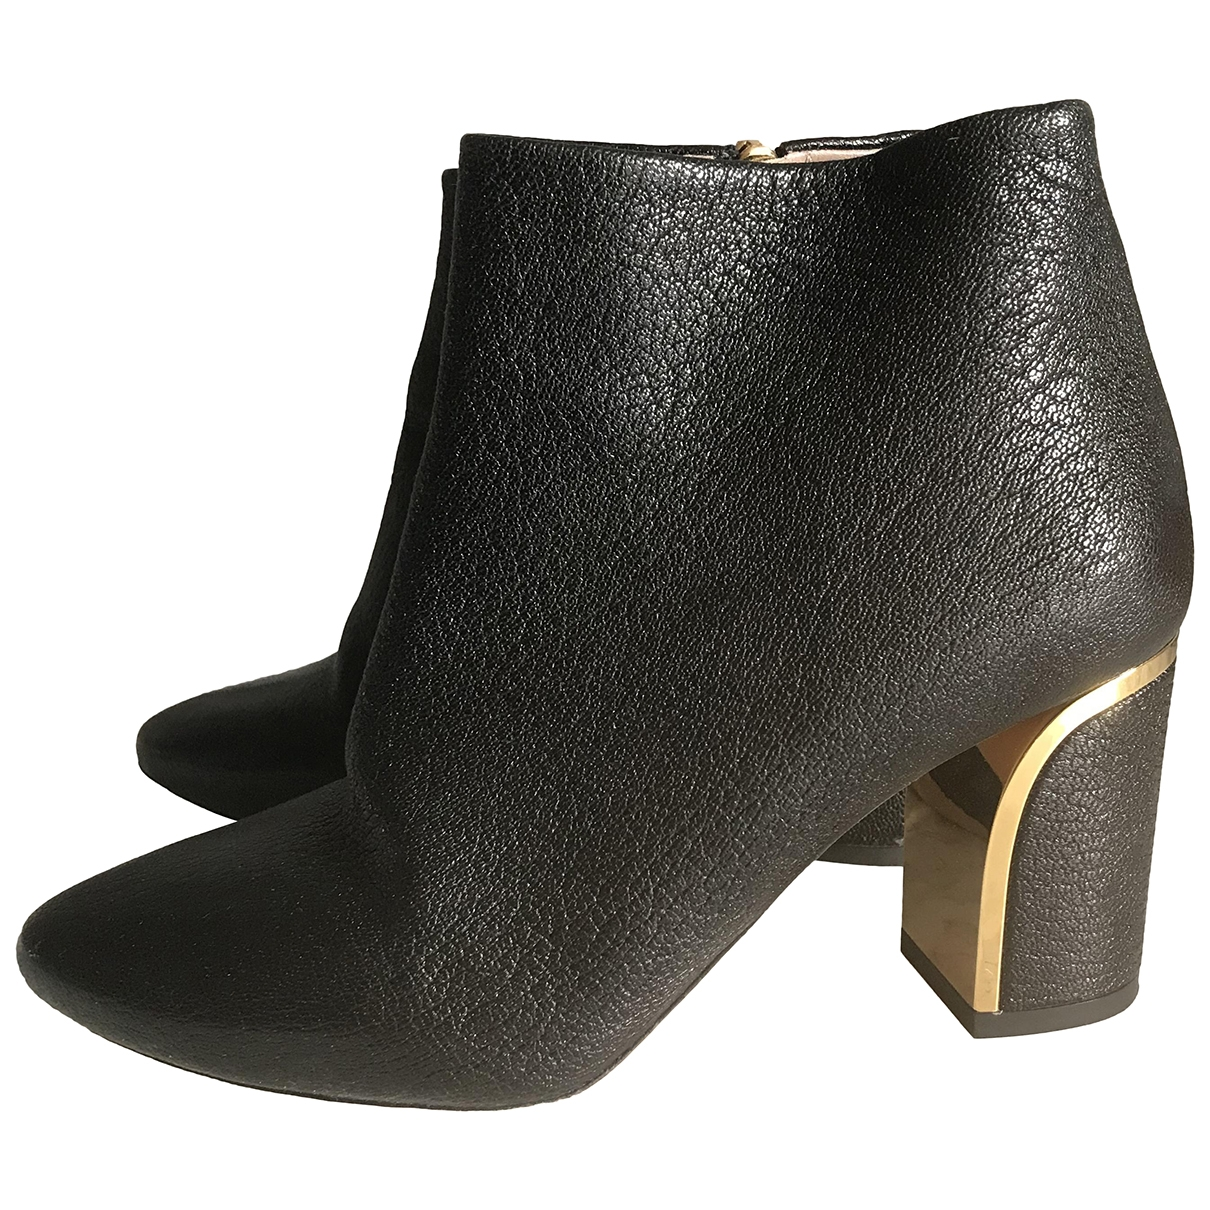 Chloé \N Black Leather Ankle boots for Women 35.5 EU